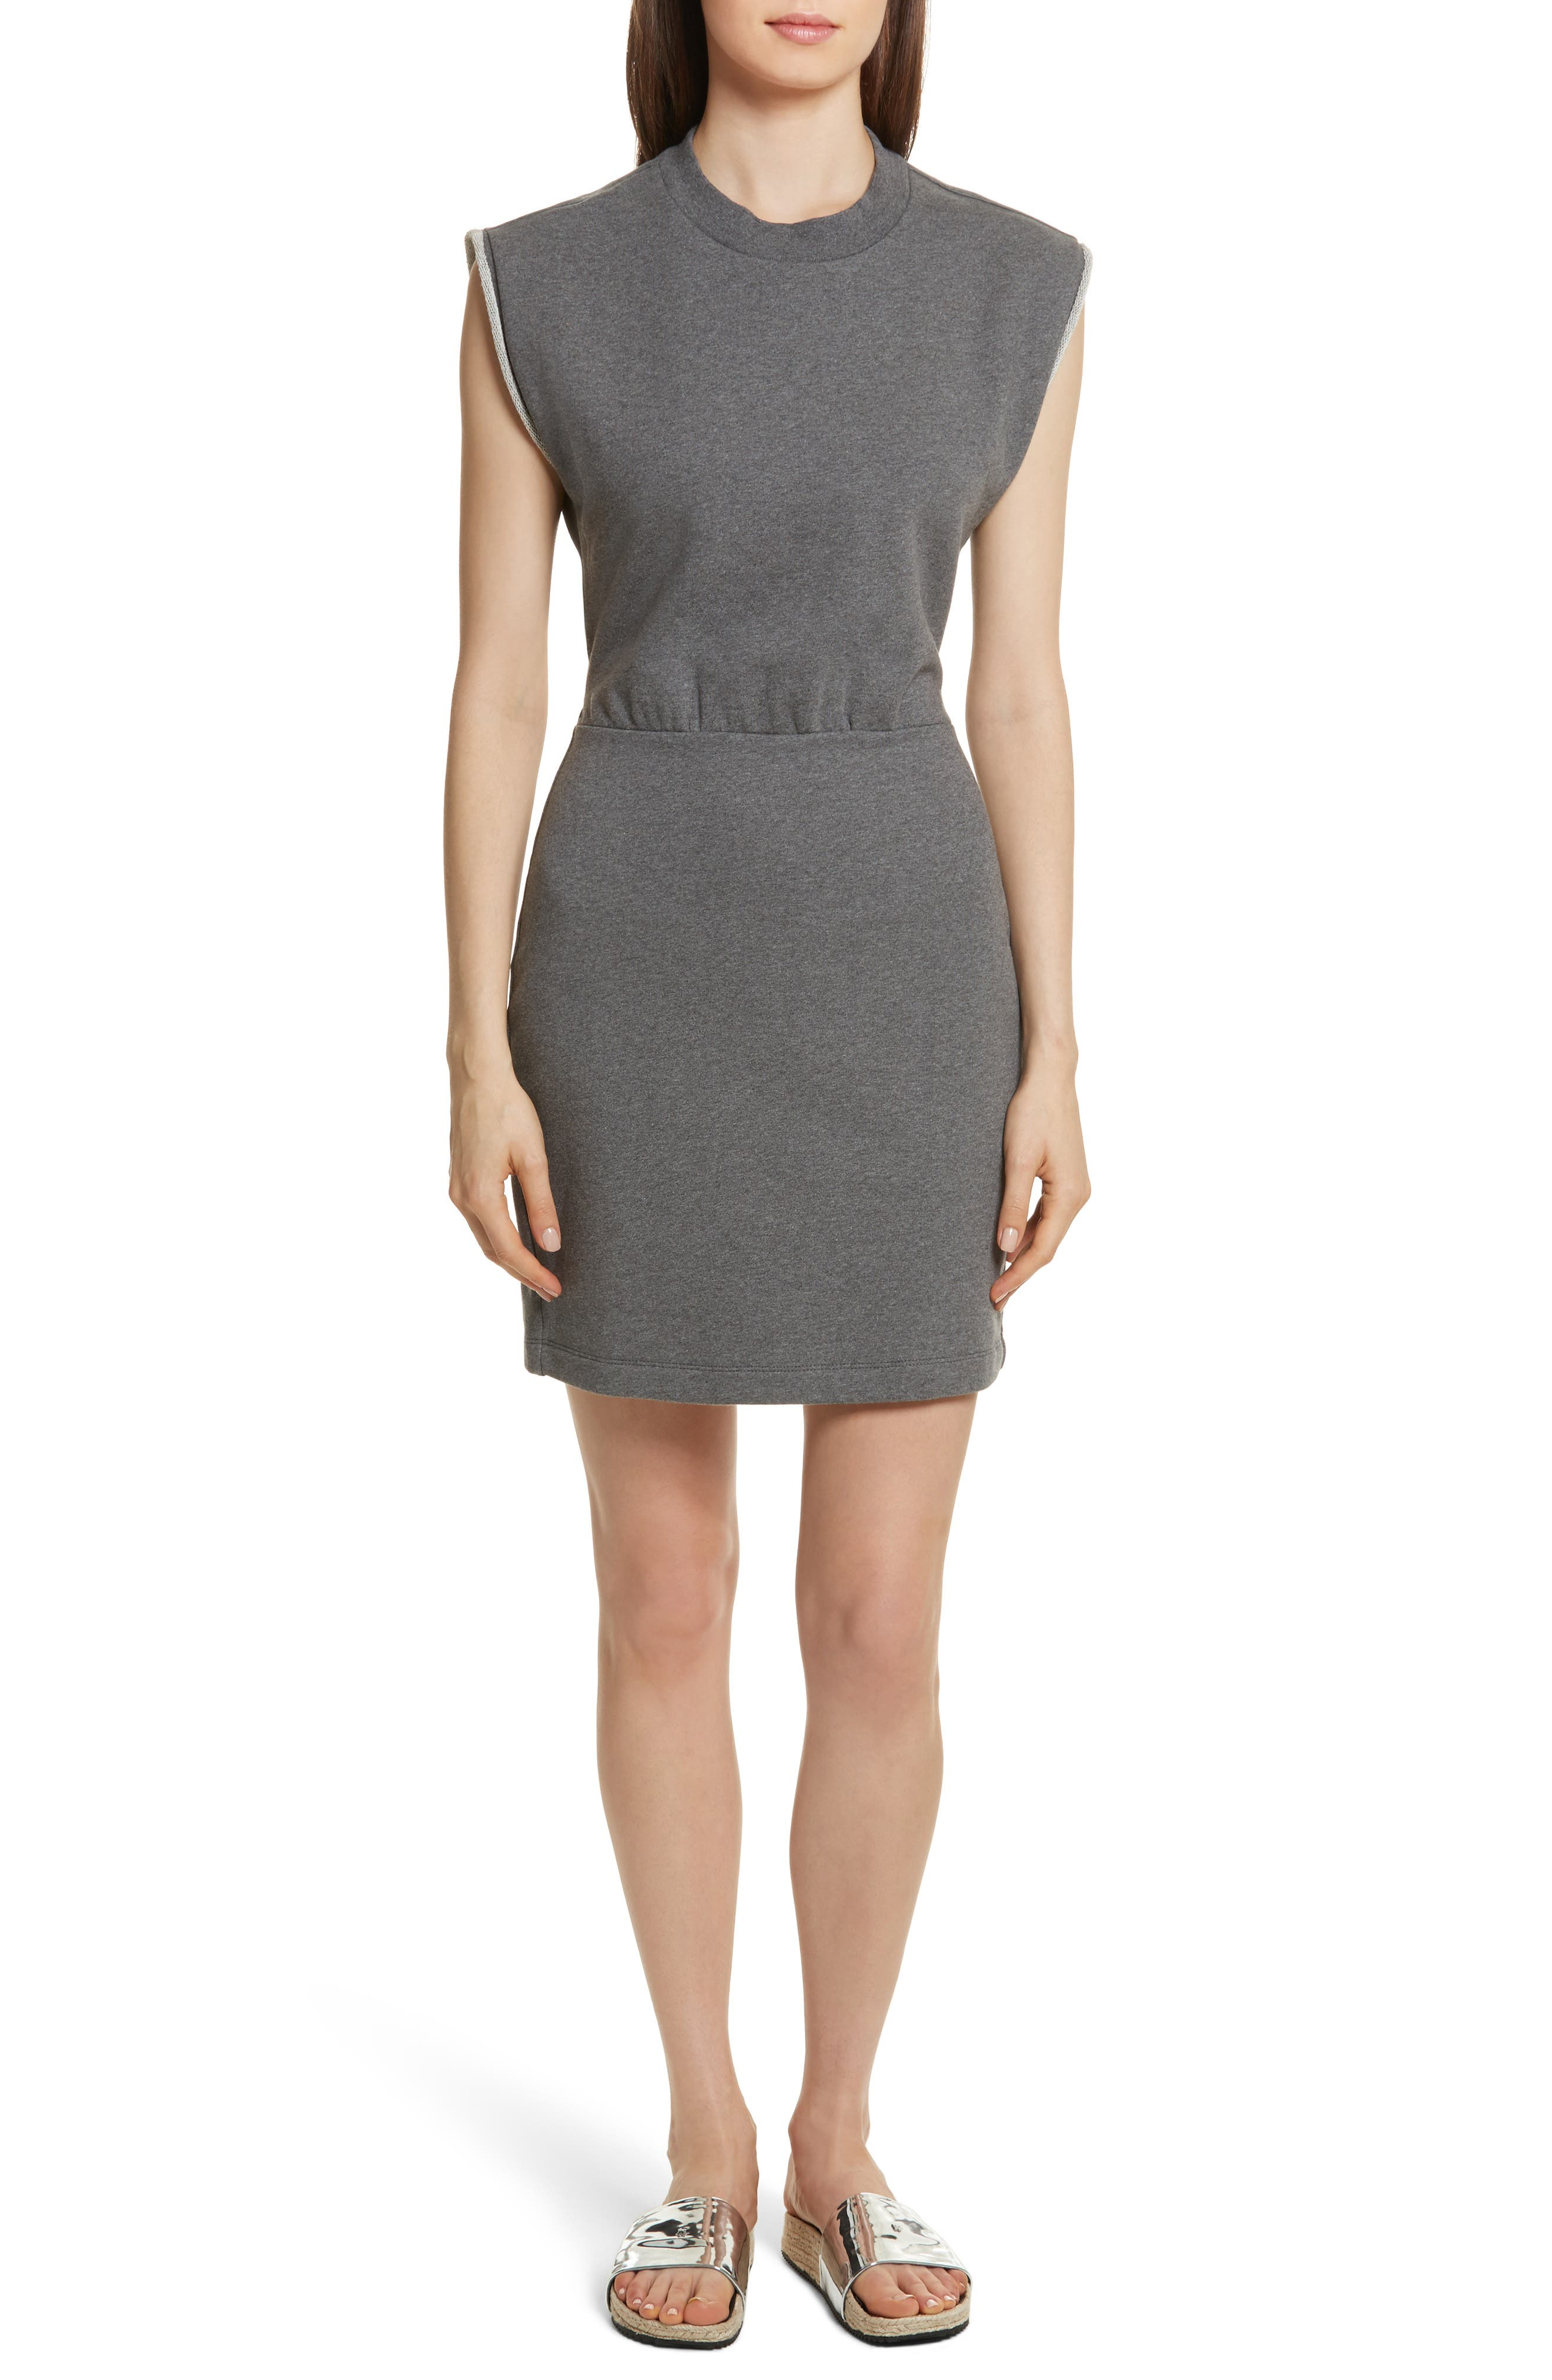 French Terry Dress,                         Main,                         color, Charcoal